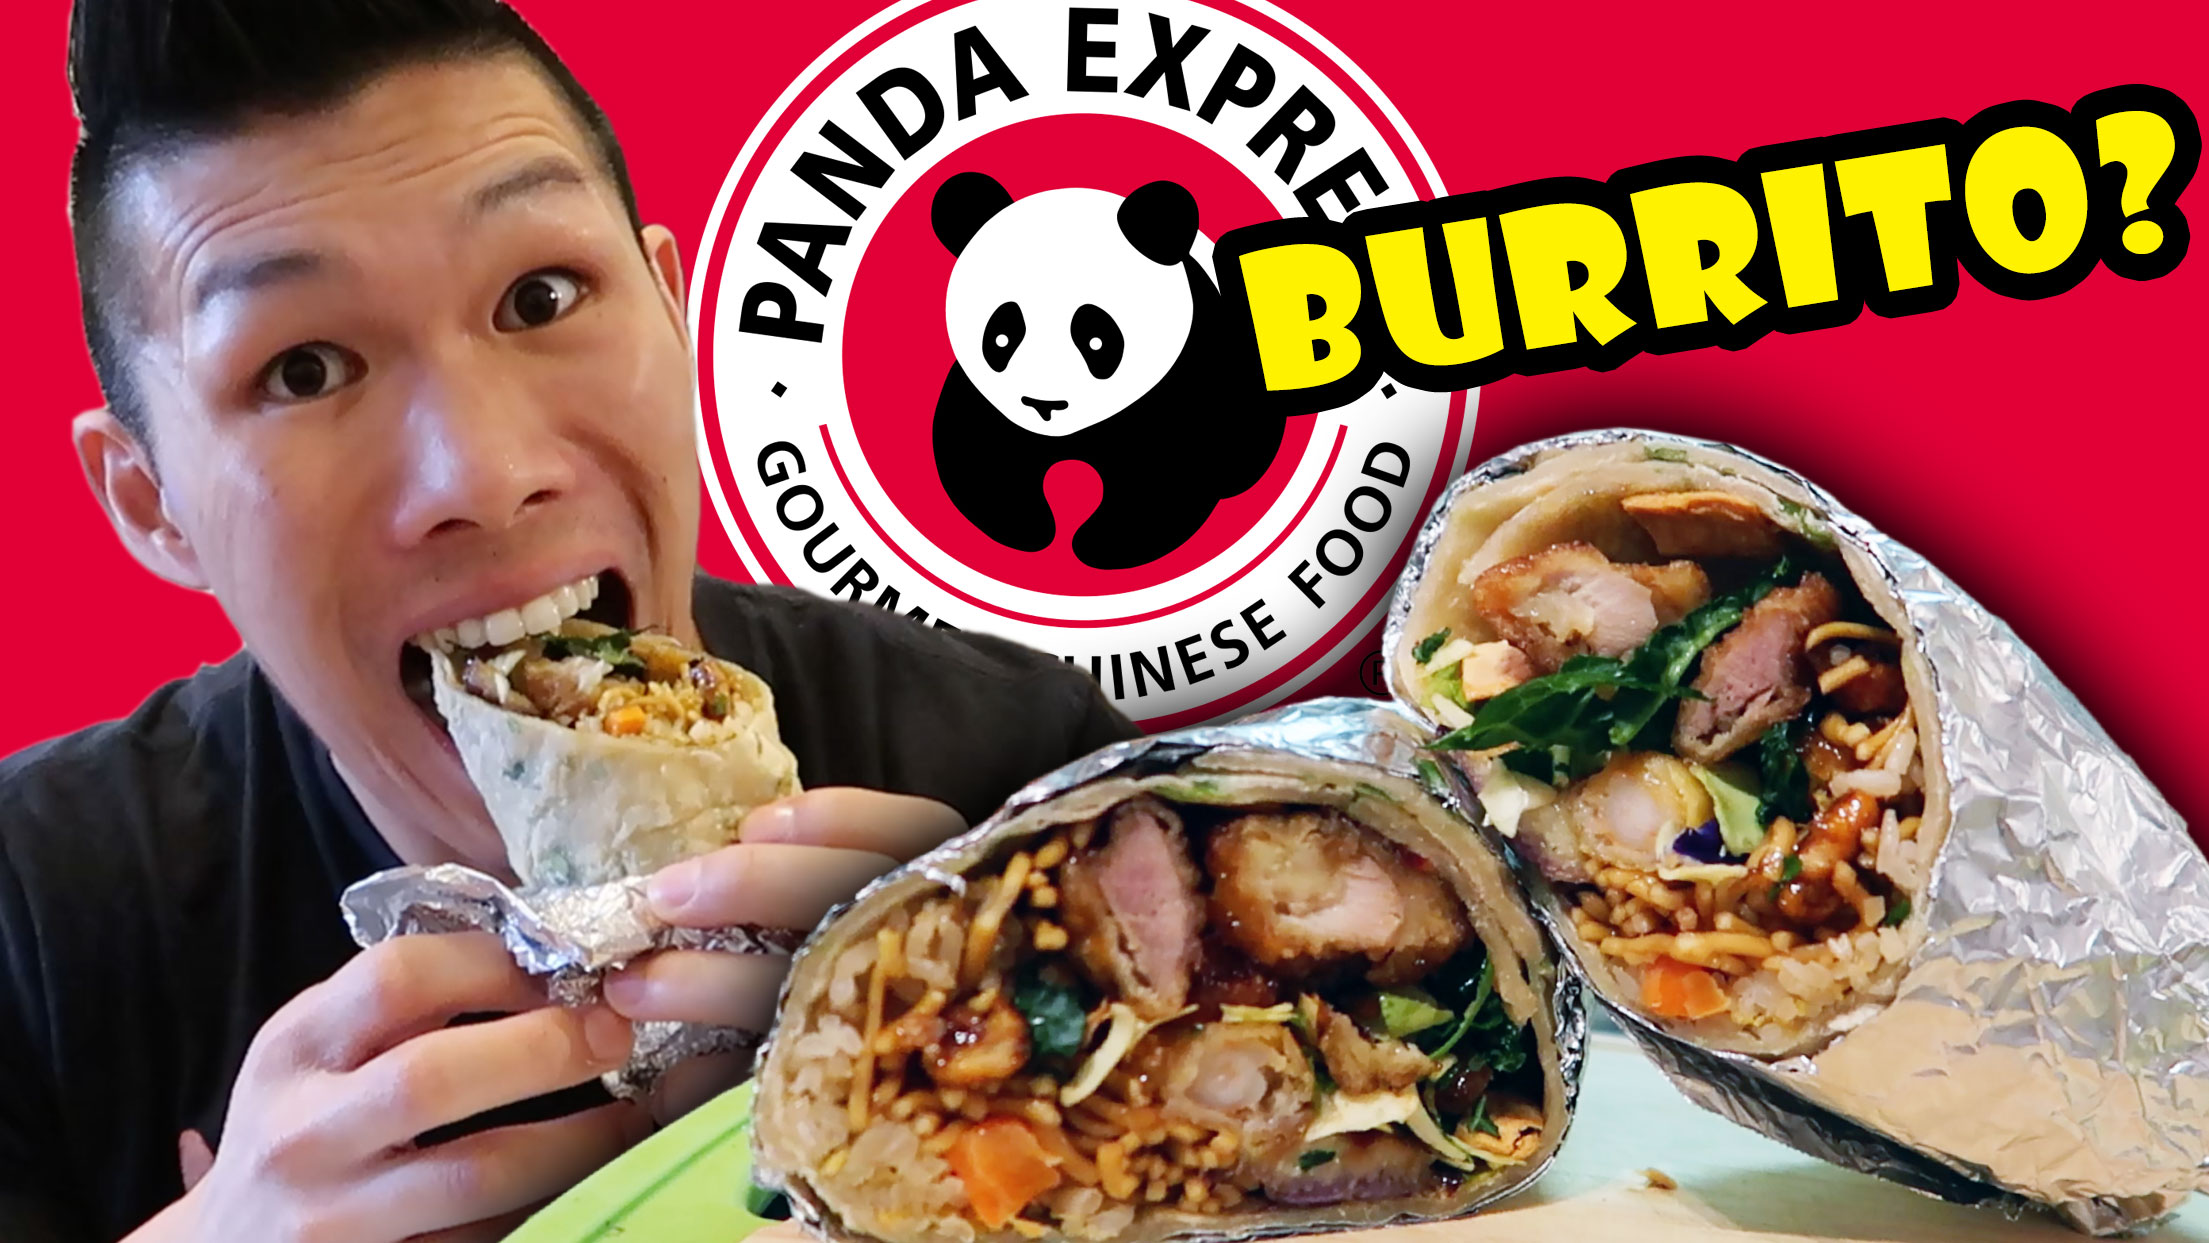 NEW PANDA EXPRESS BURRITO TASTE TEST